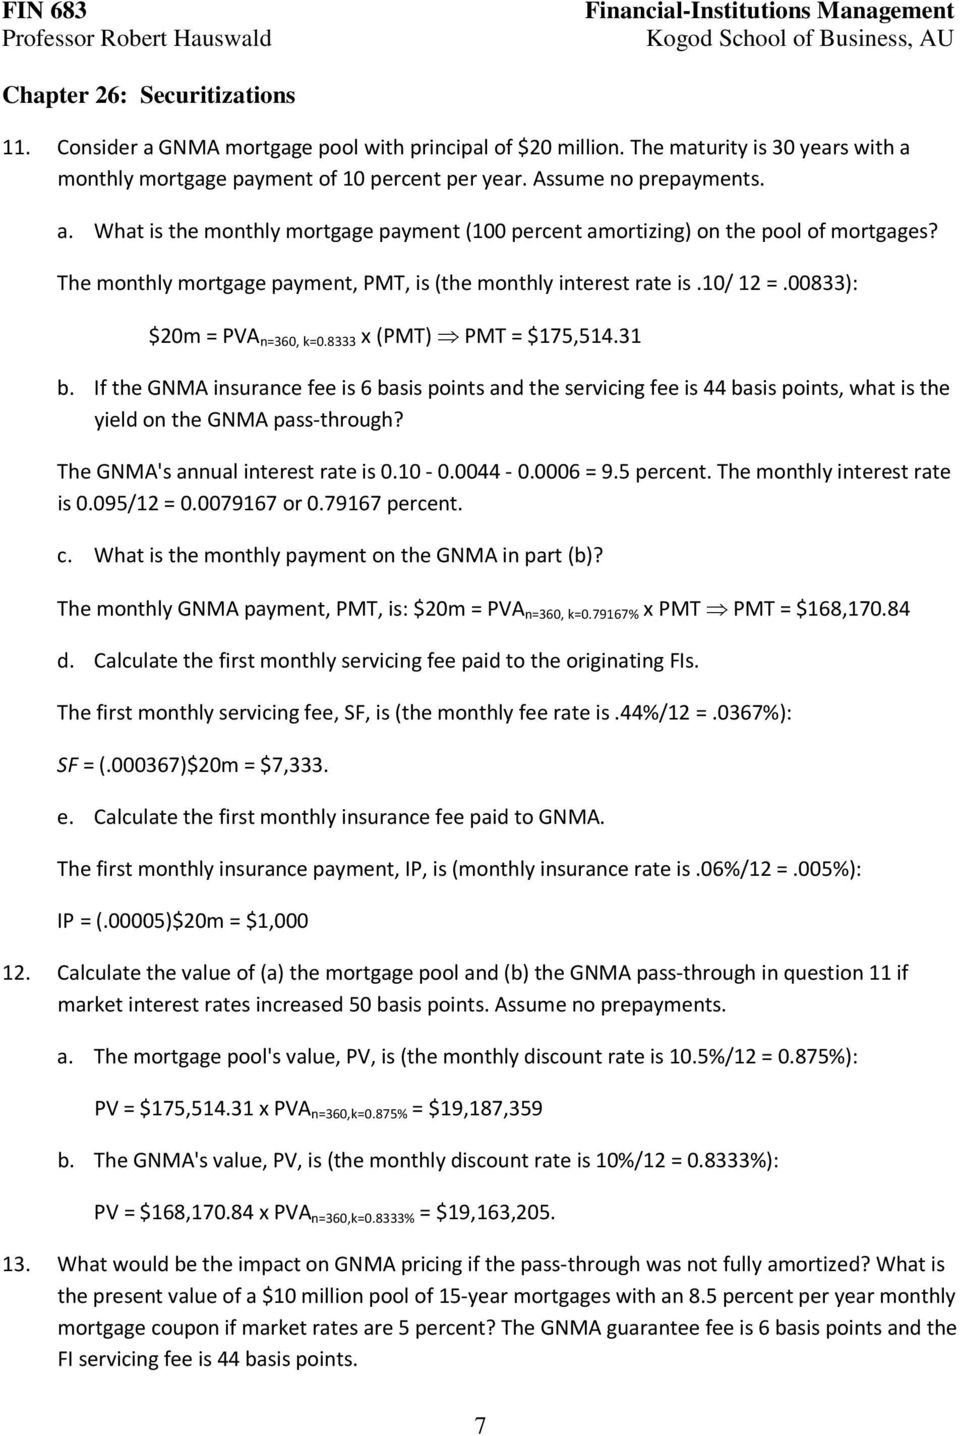 If the GNMA insurance fee is 6 basis points and the servicing fee is 44 basis points, what is the yield on the GNMA pass-through? The GNMA's annual interest rate is 0.10-0.0044-0.0006 = 9.5 percent.